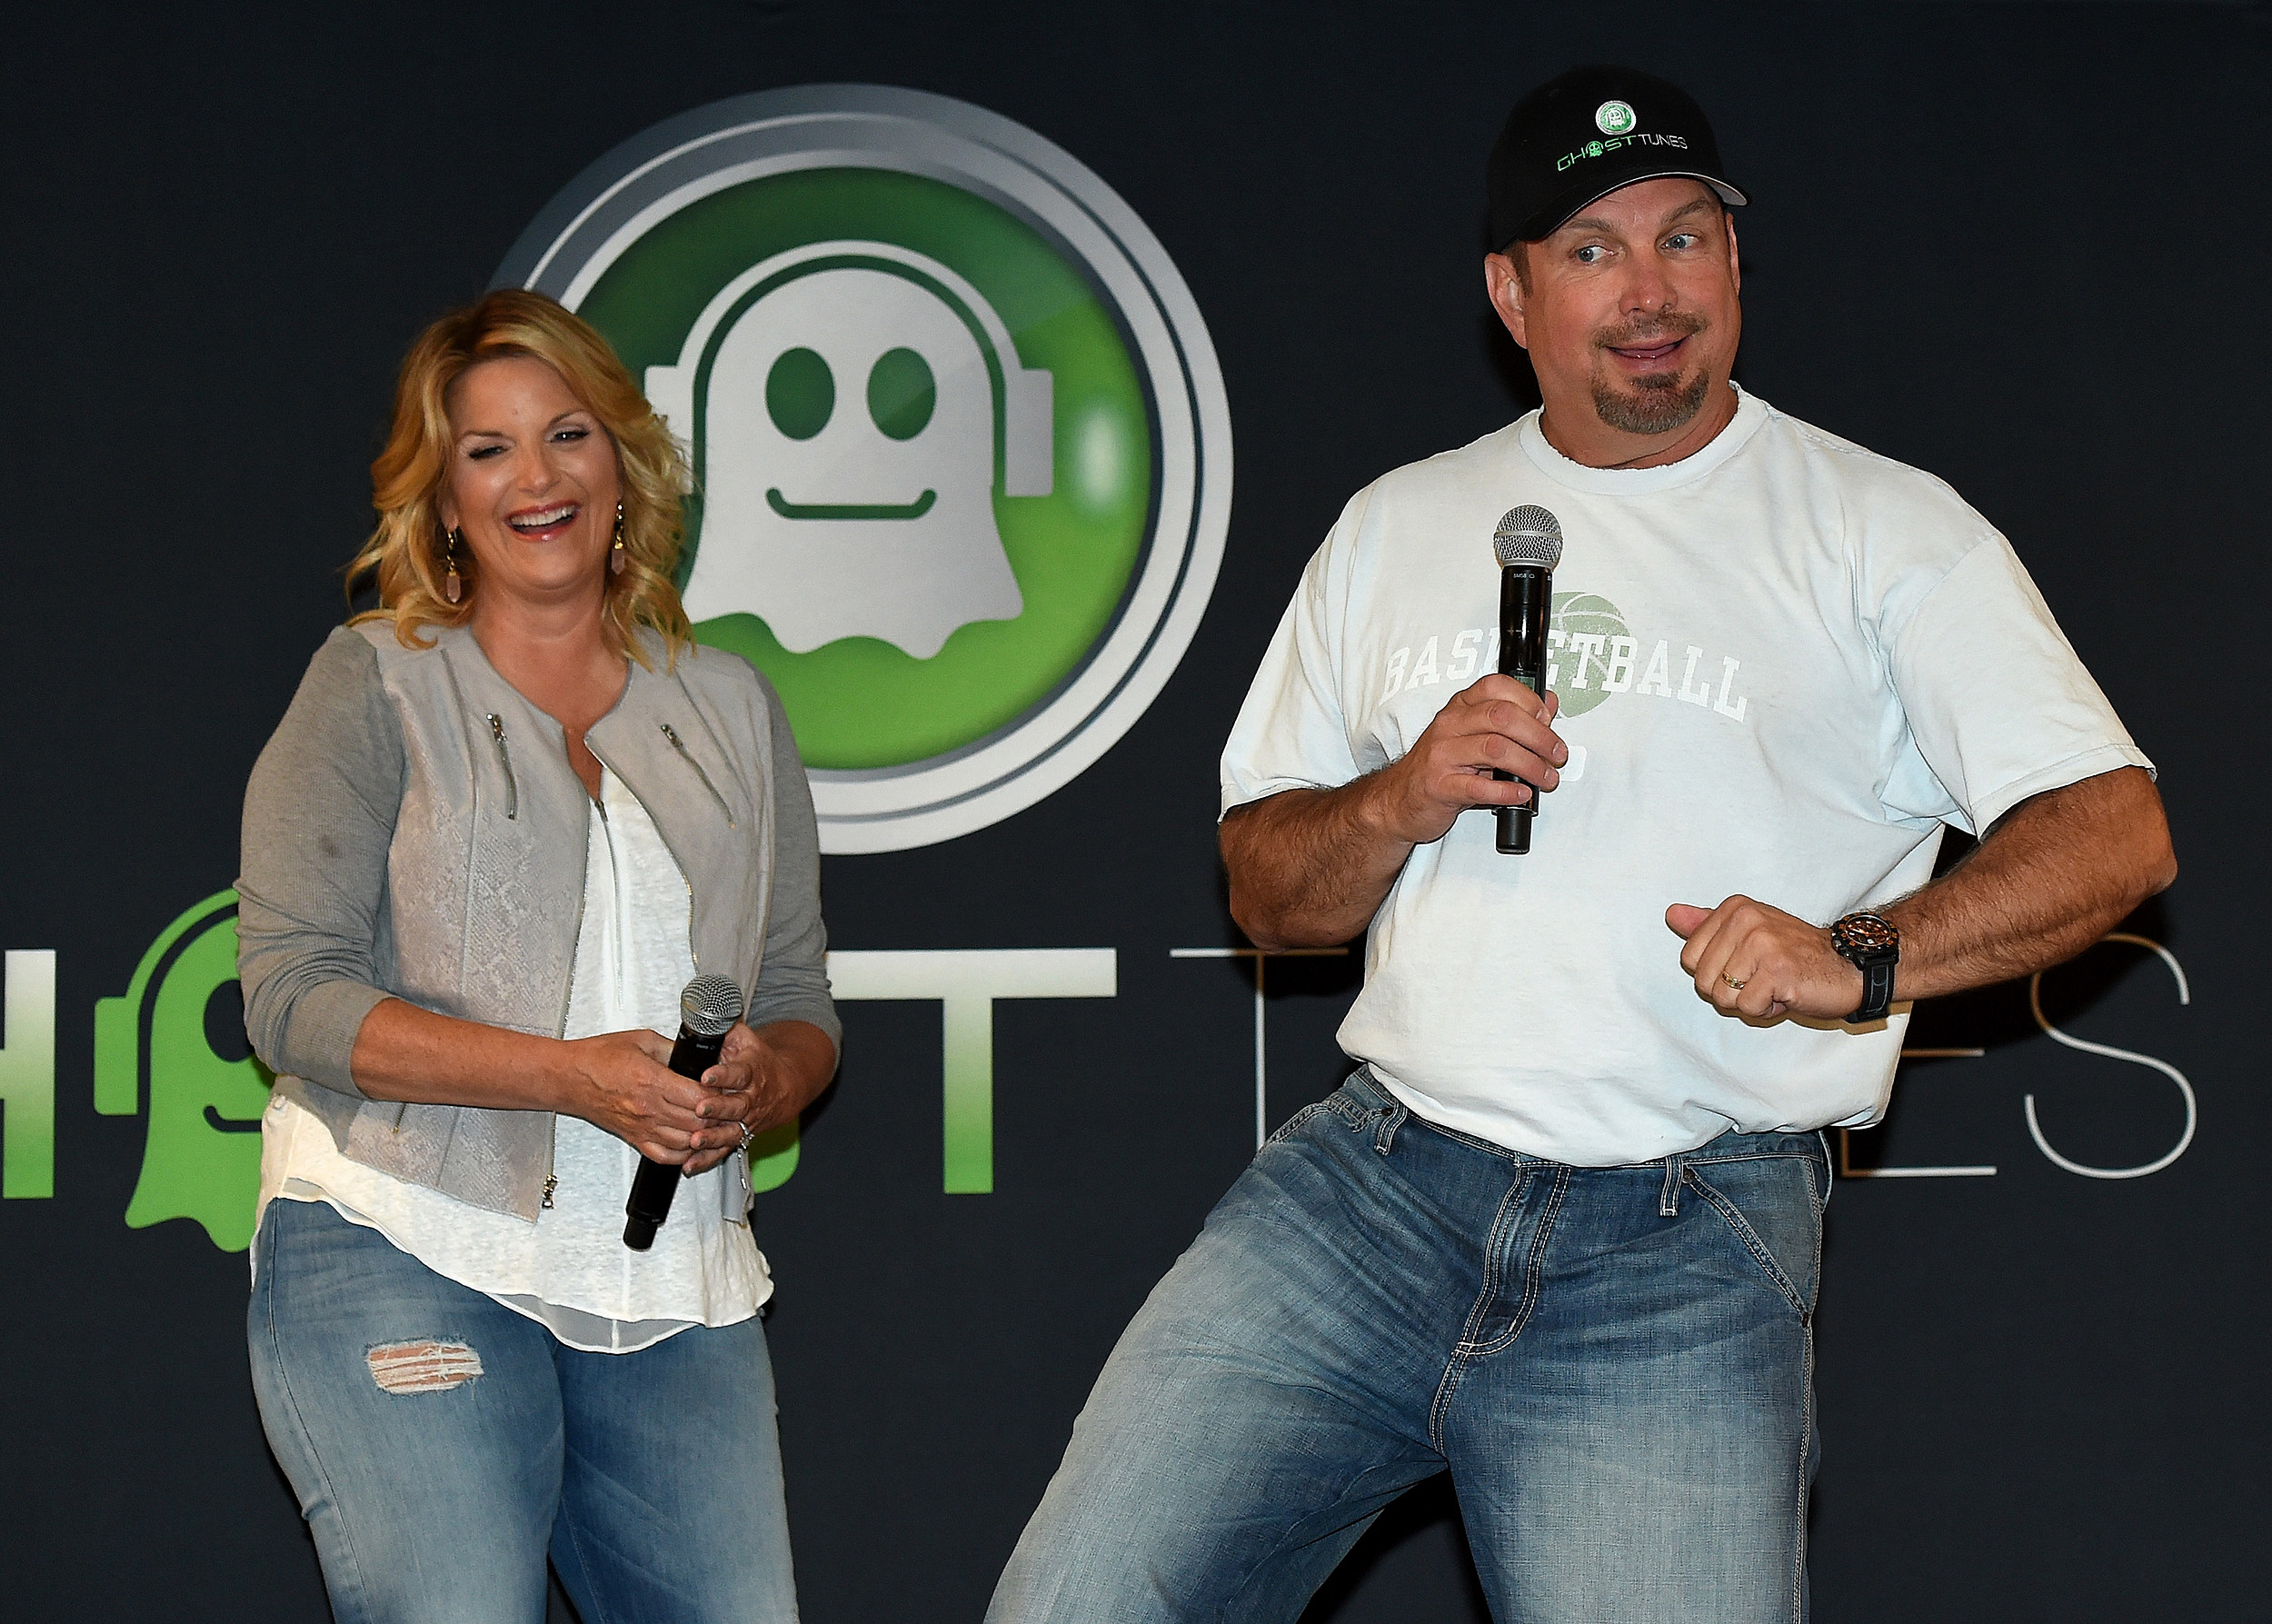 Gary Bristol Want To Introduce You And Your Bff To Garth Trisha